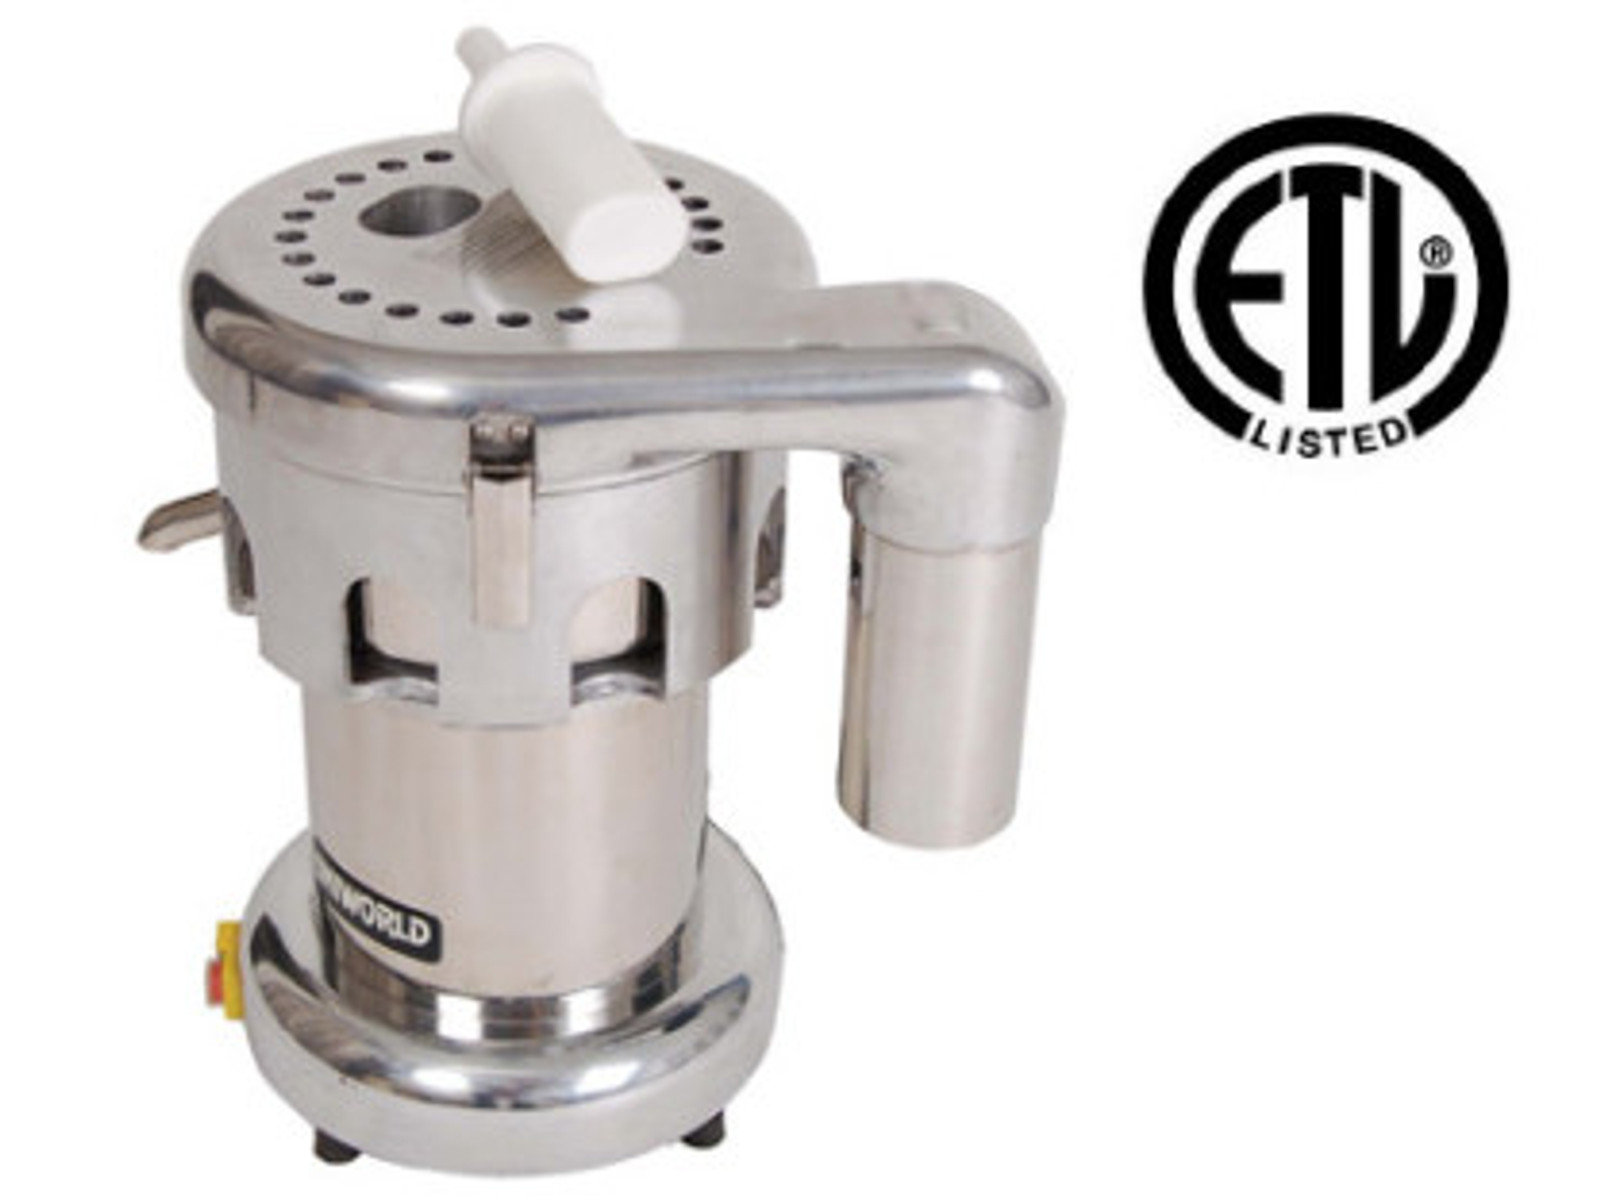 UNIWORLD COMMERCIAL 1 HP JUICE EXTRACTOR *CALL FOR ACCURATE PRICING*